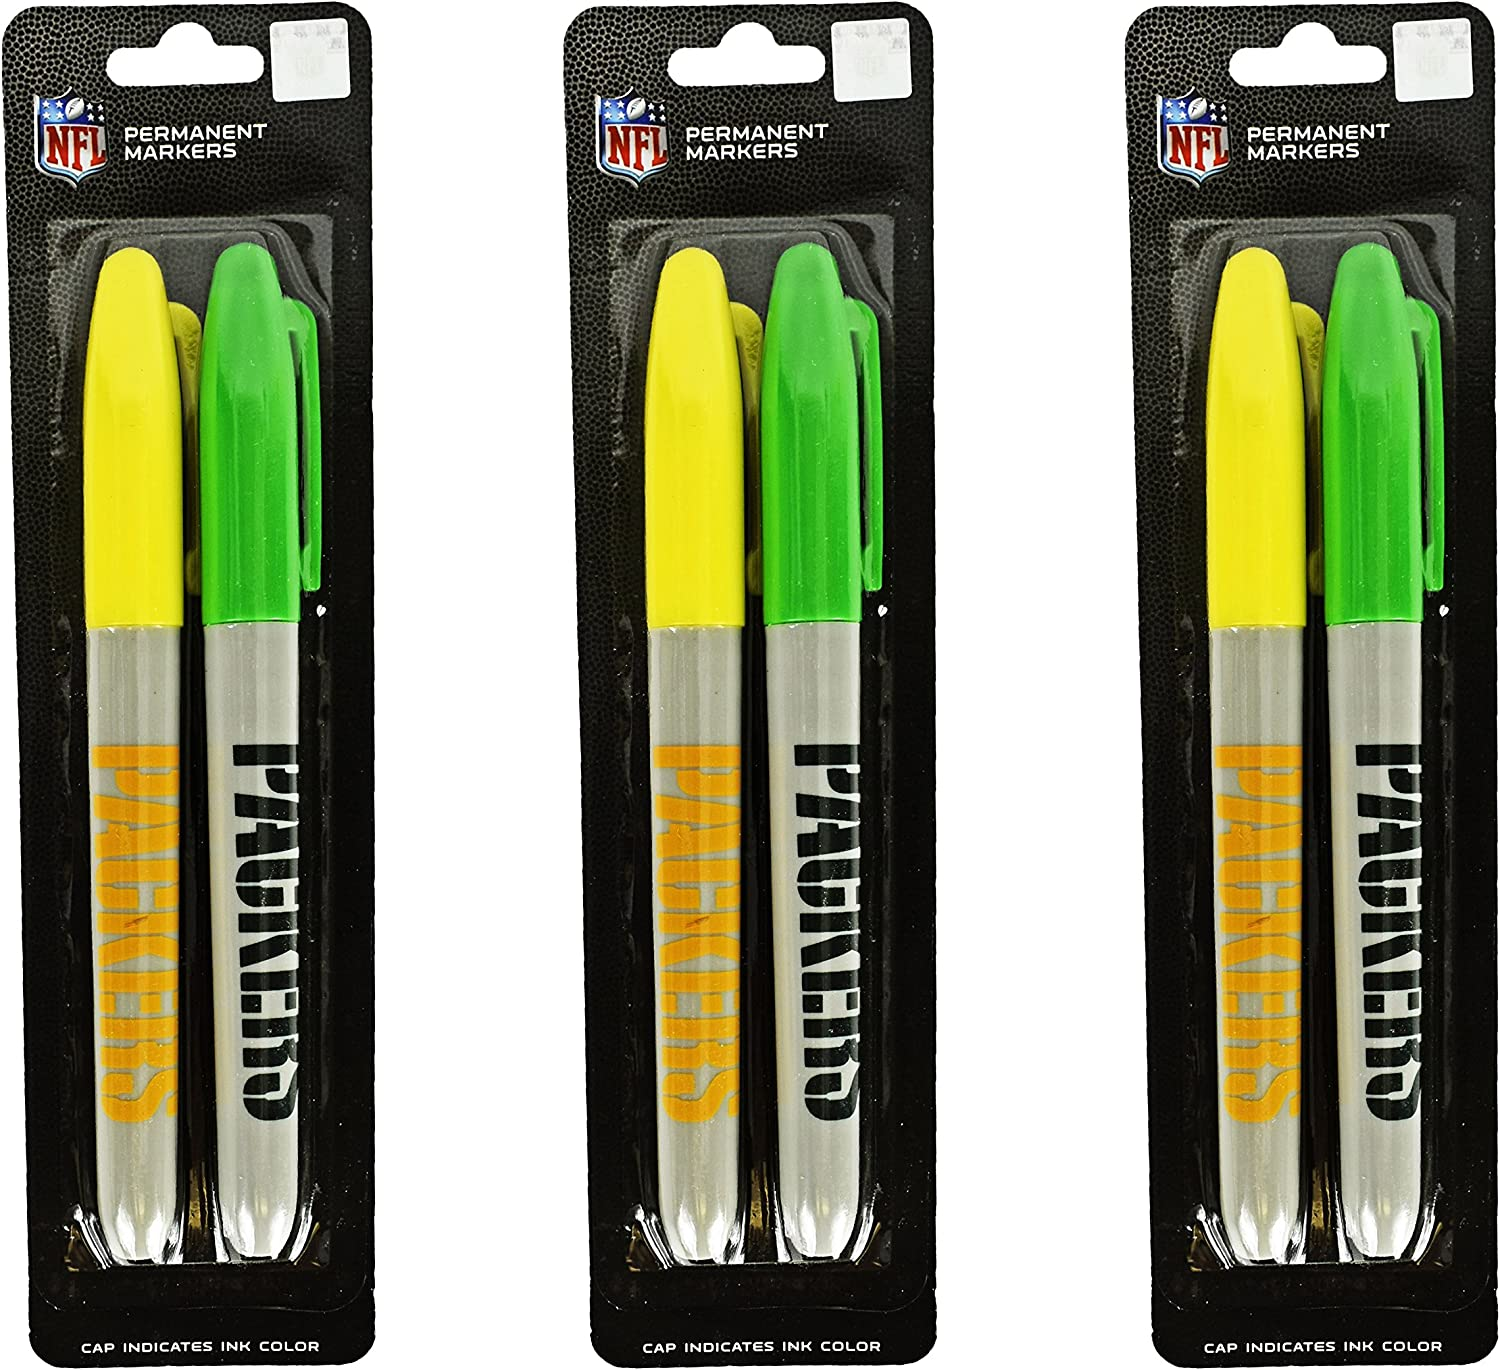 "Set of 6 NFL Green Bay Packers Themed Permanent Markers! Cap Indicates Color - 5.5"" - Features Pocket Clip for Marking on the Go - Perfect for Home, School, or the Office!"